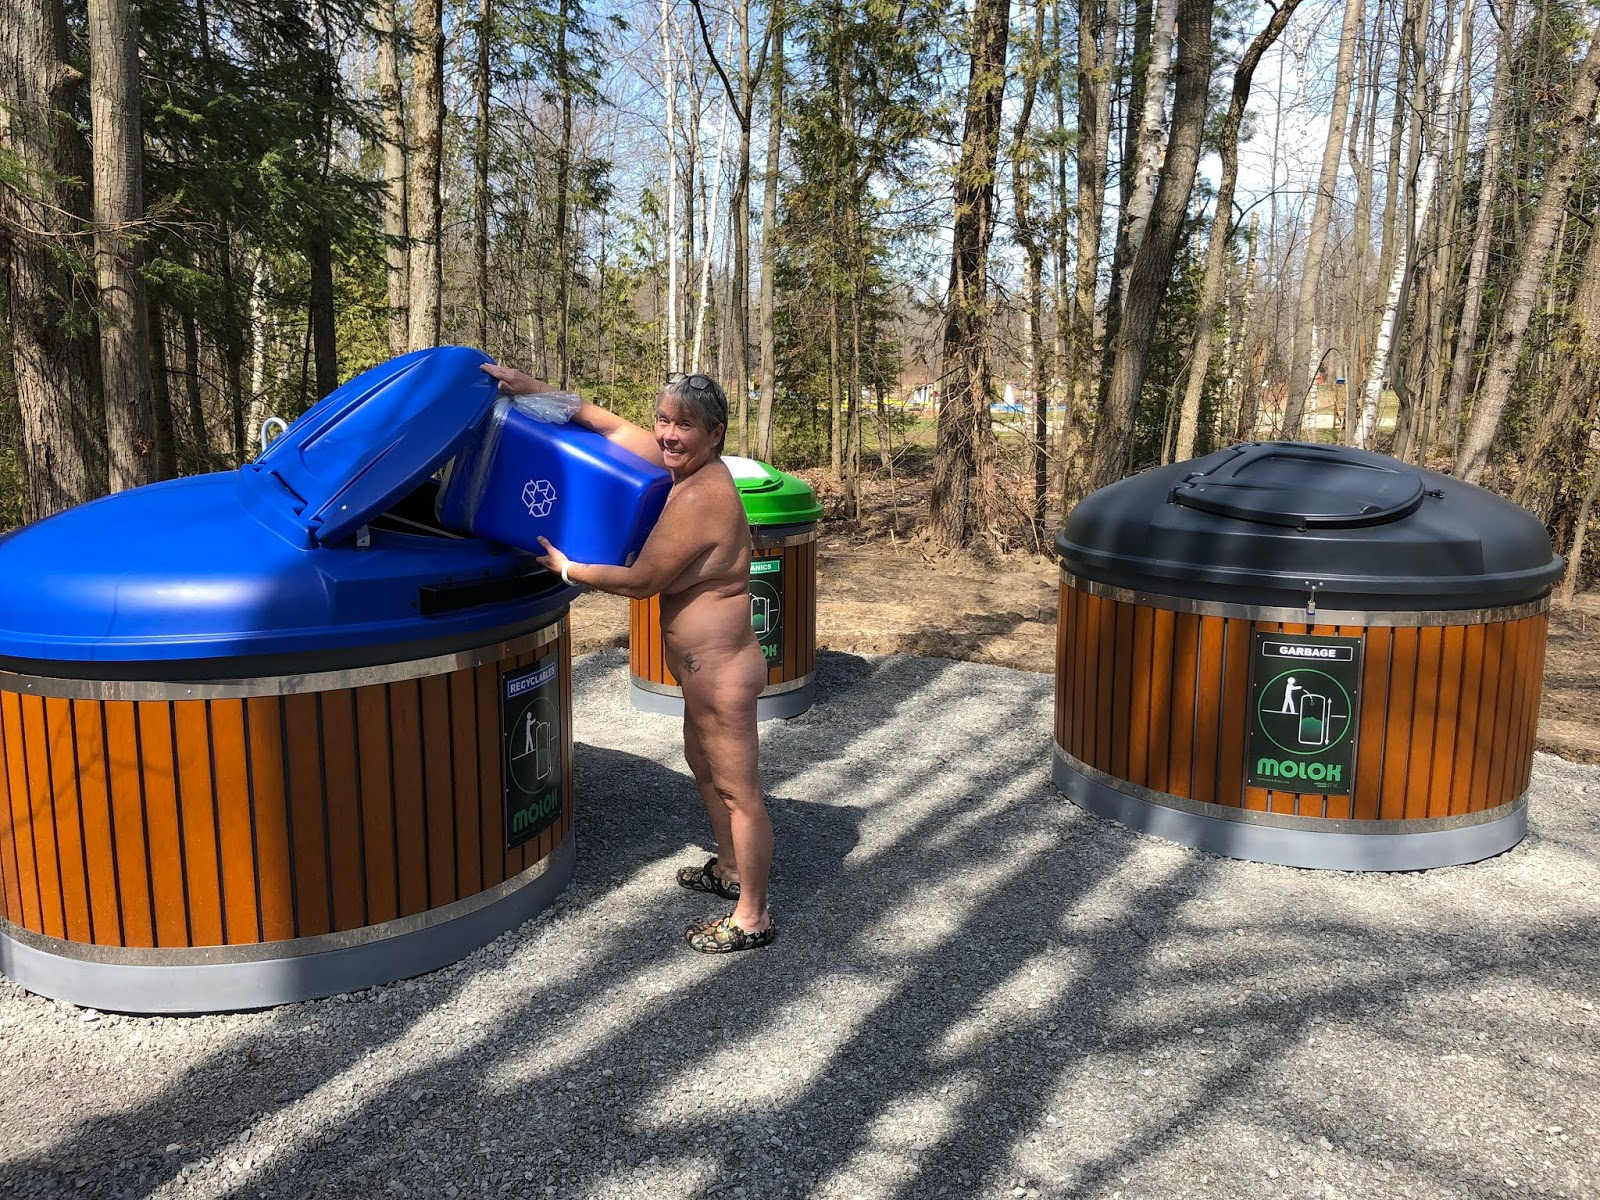 Recycling, composting, and waste disposal using Molok